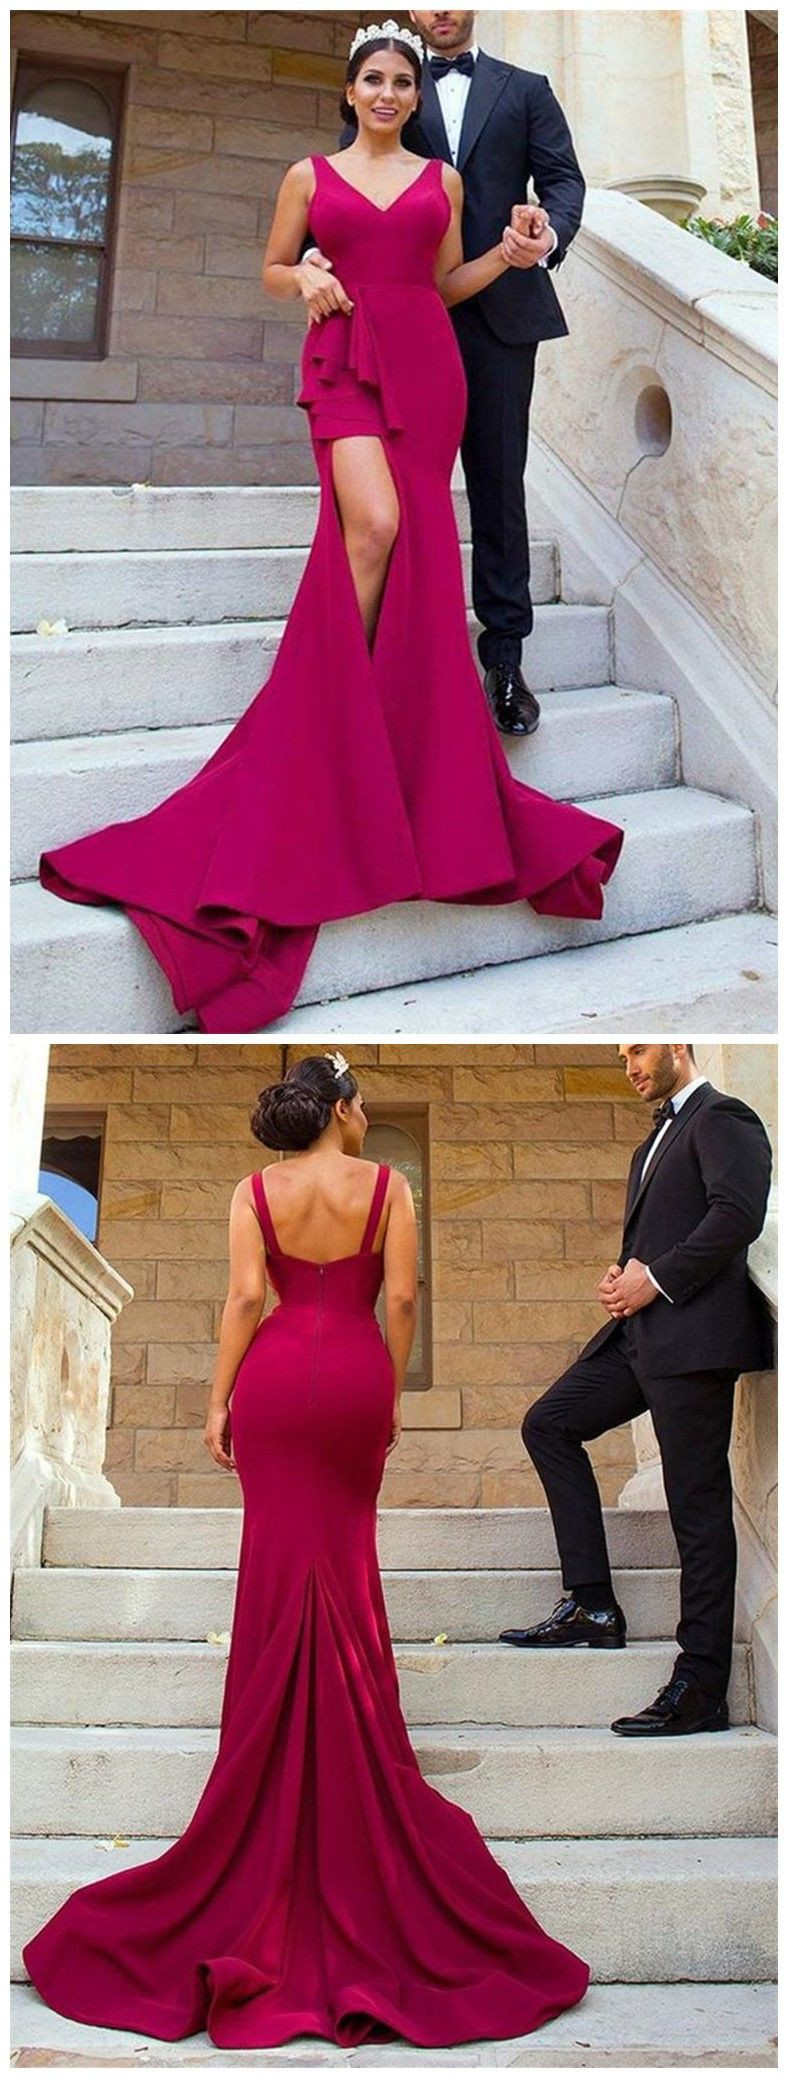 Magenta and purple fashion collection with bridesmaid dress, cocktail dress, wedding dress, form ...